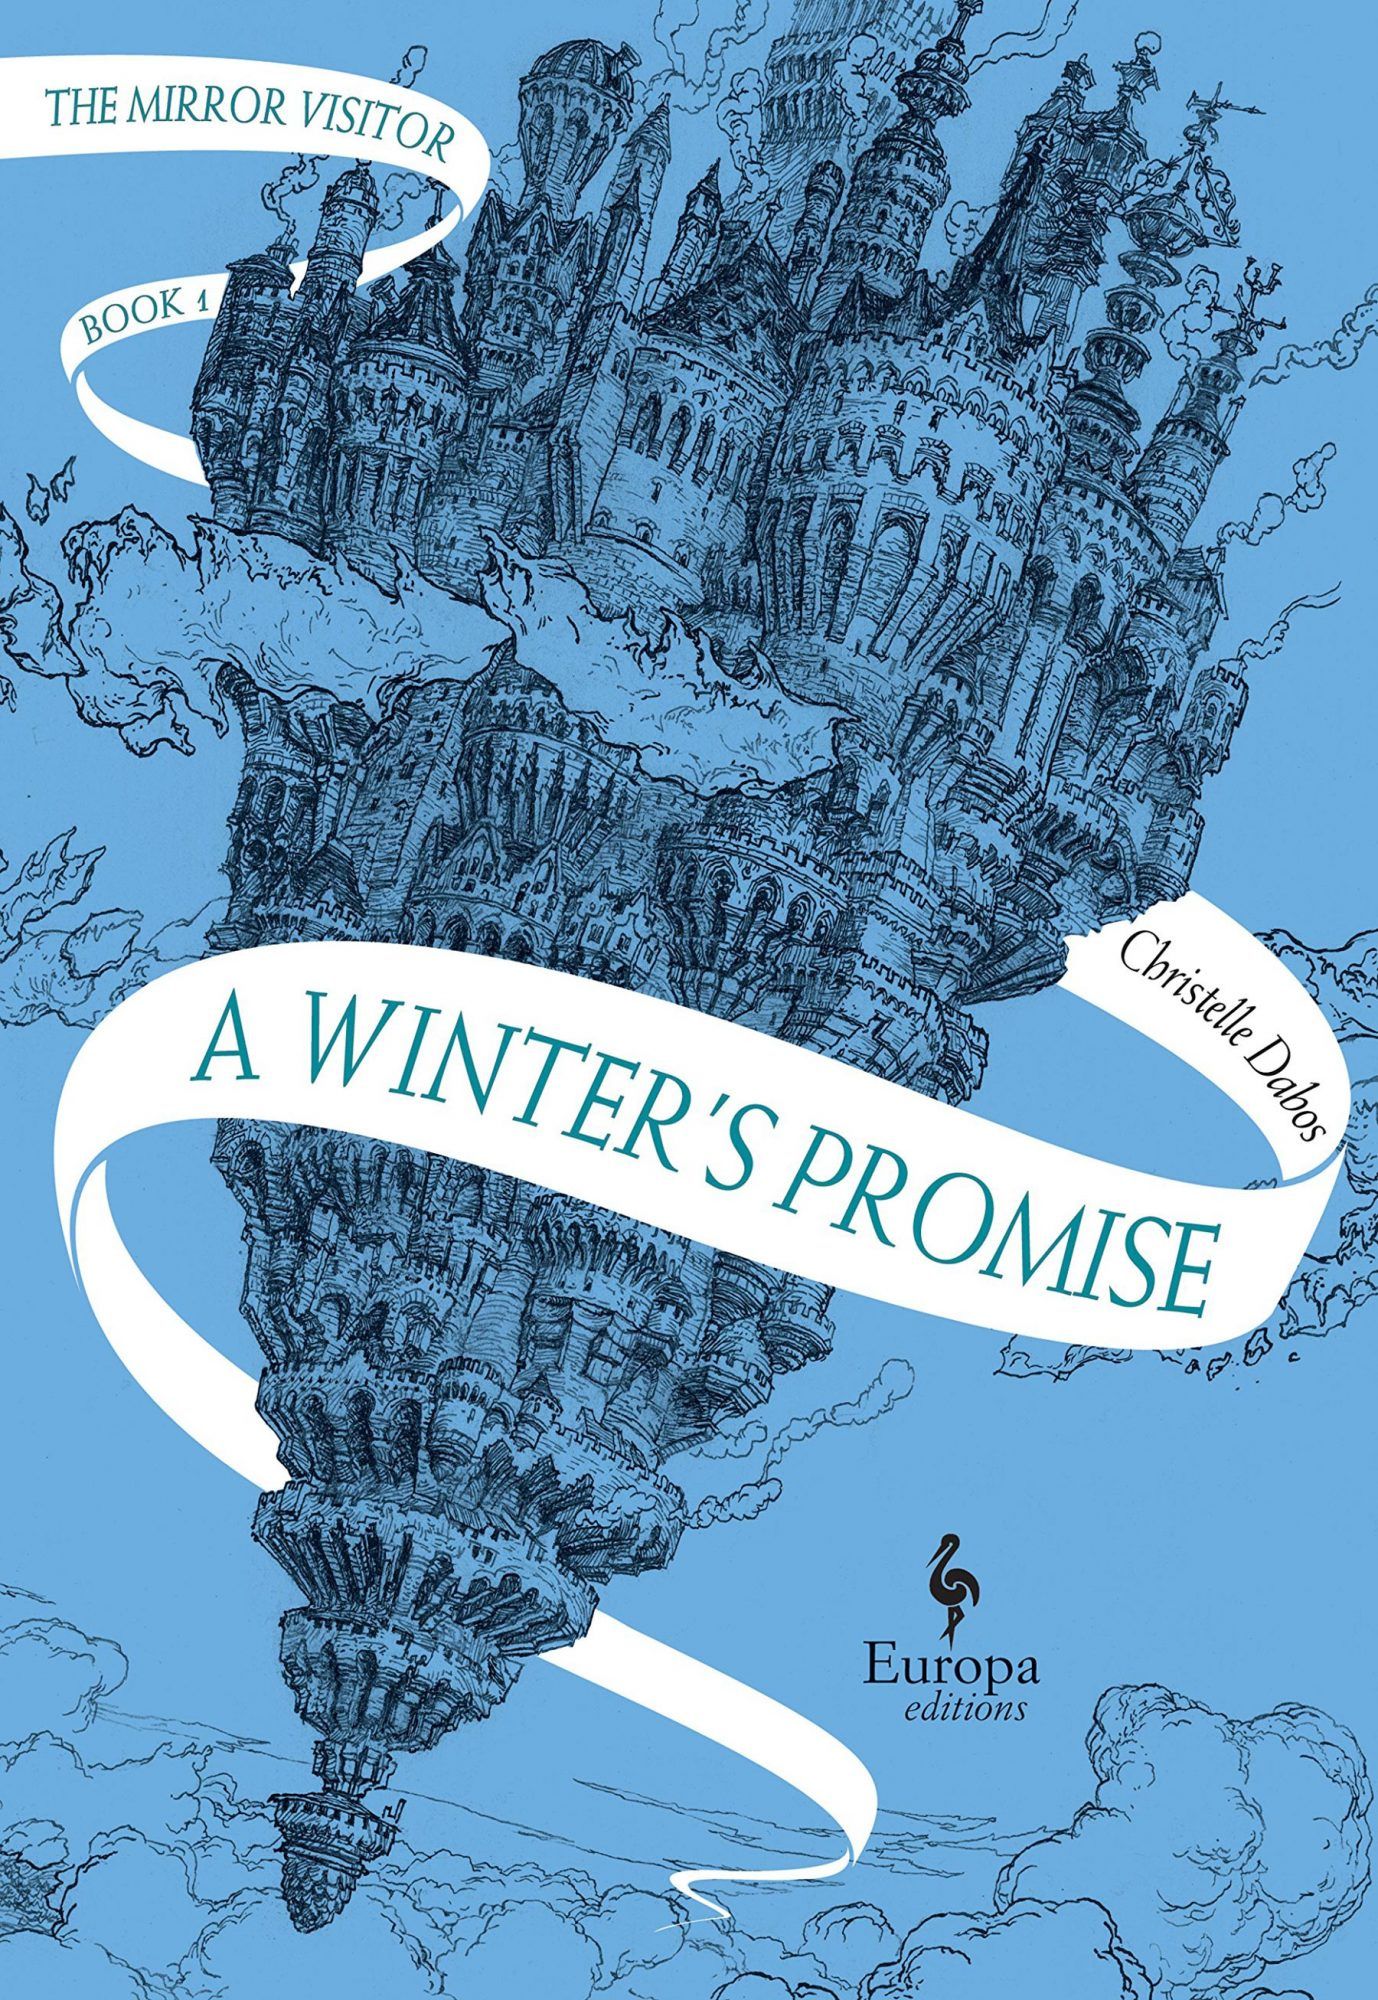 A Winter's Promise by Christelle DabosCR: Europa Editions